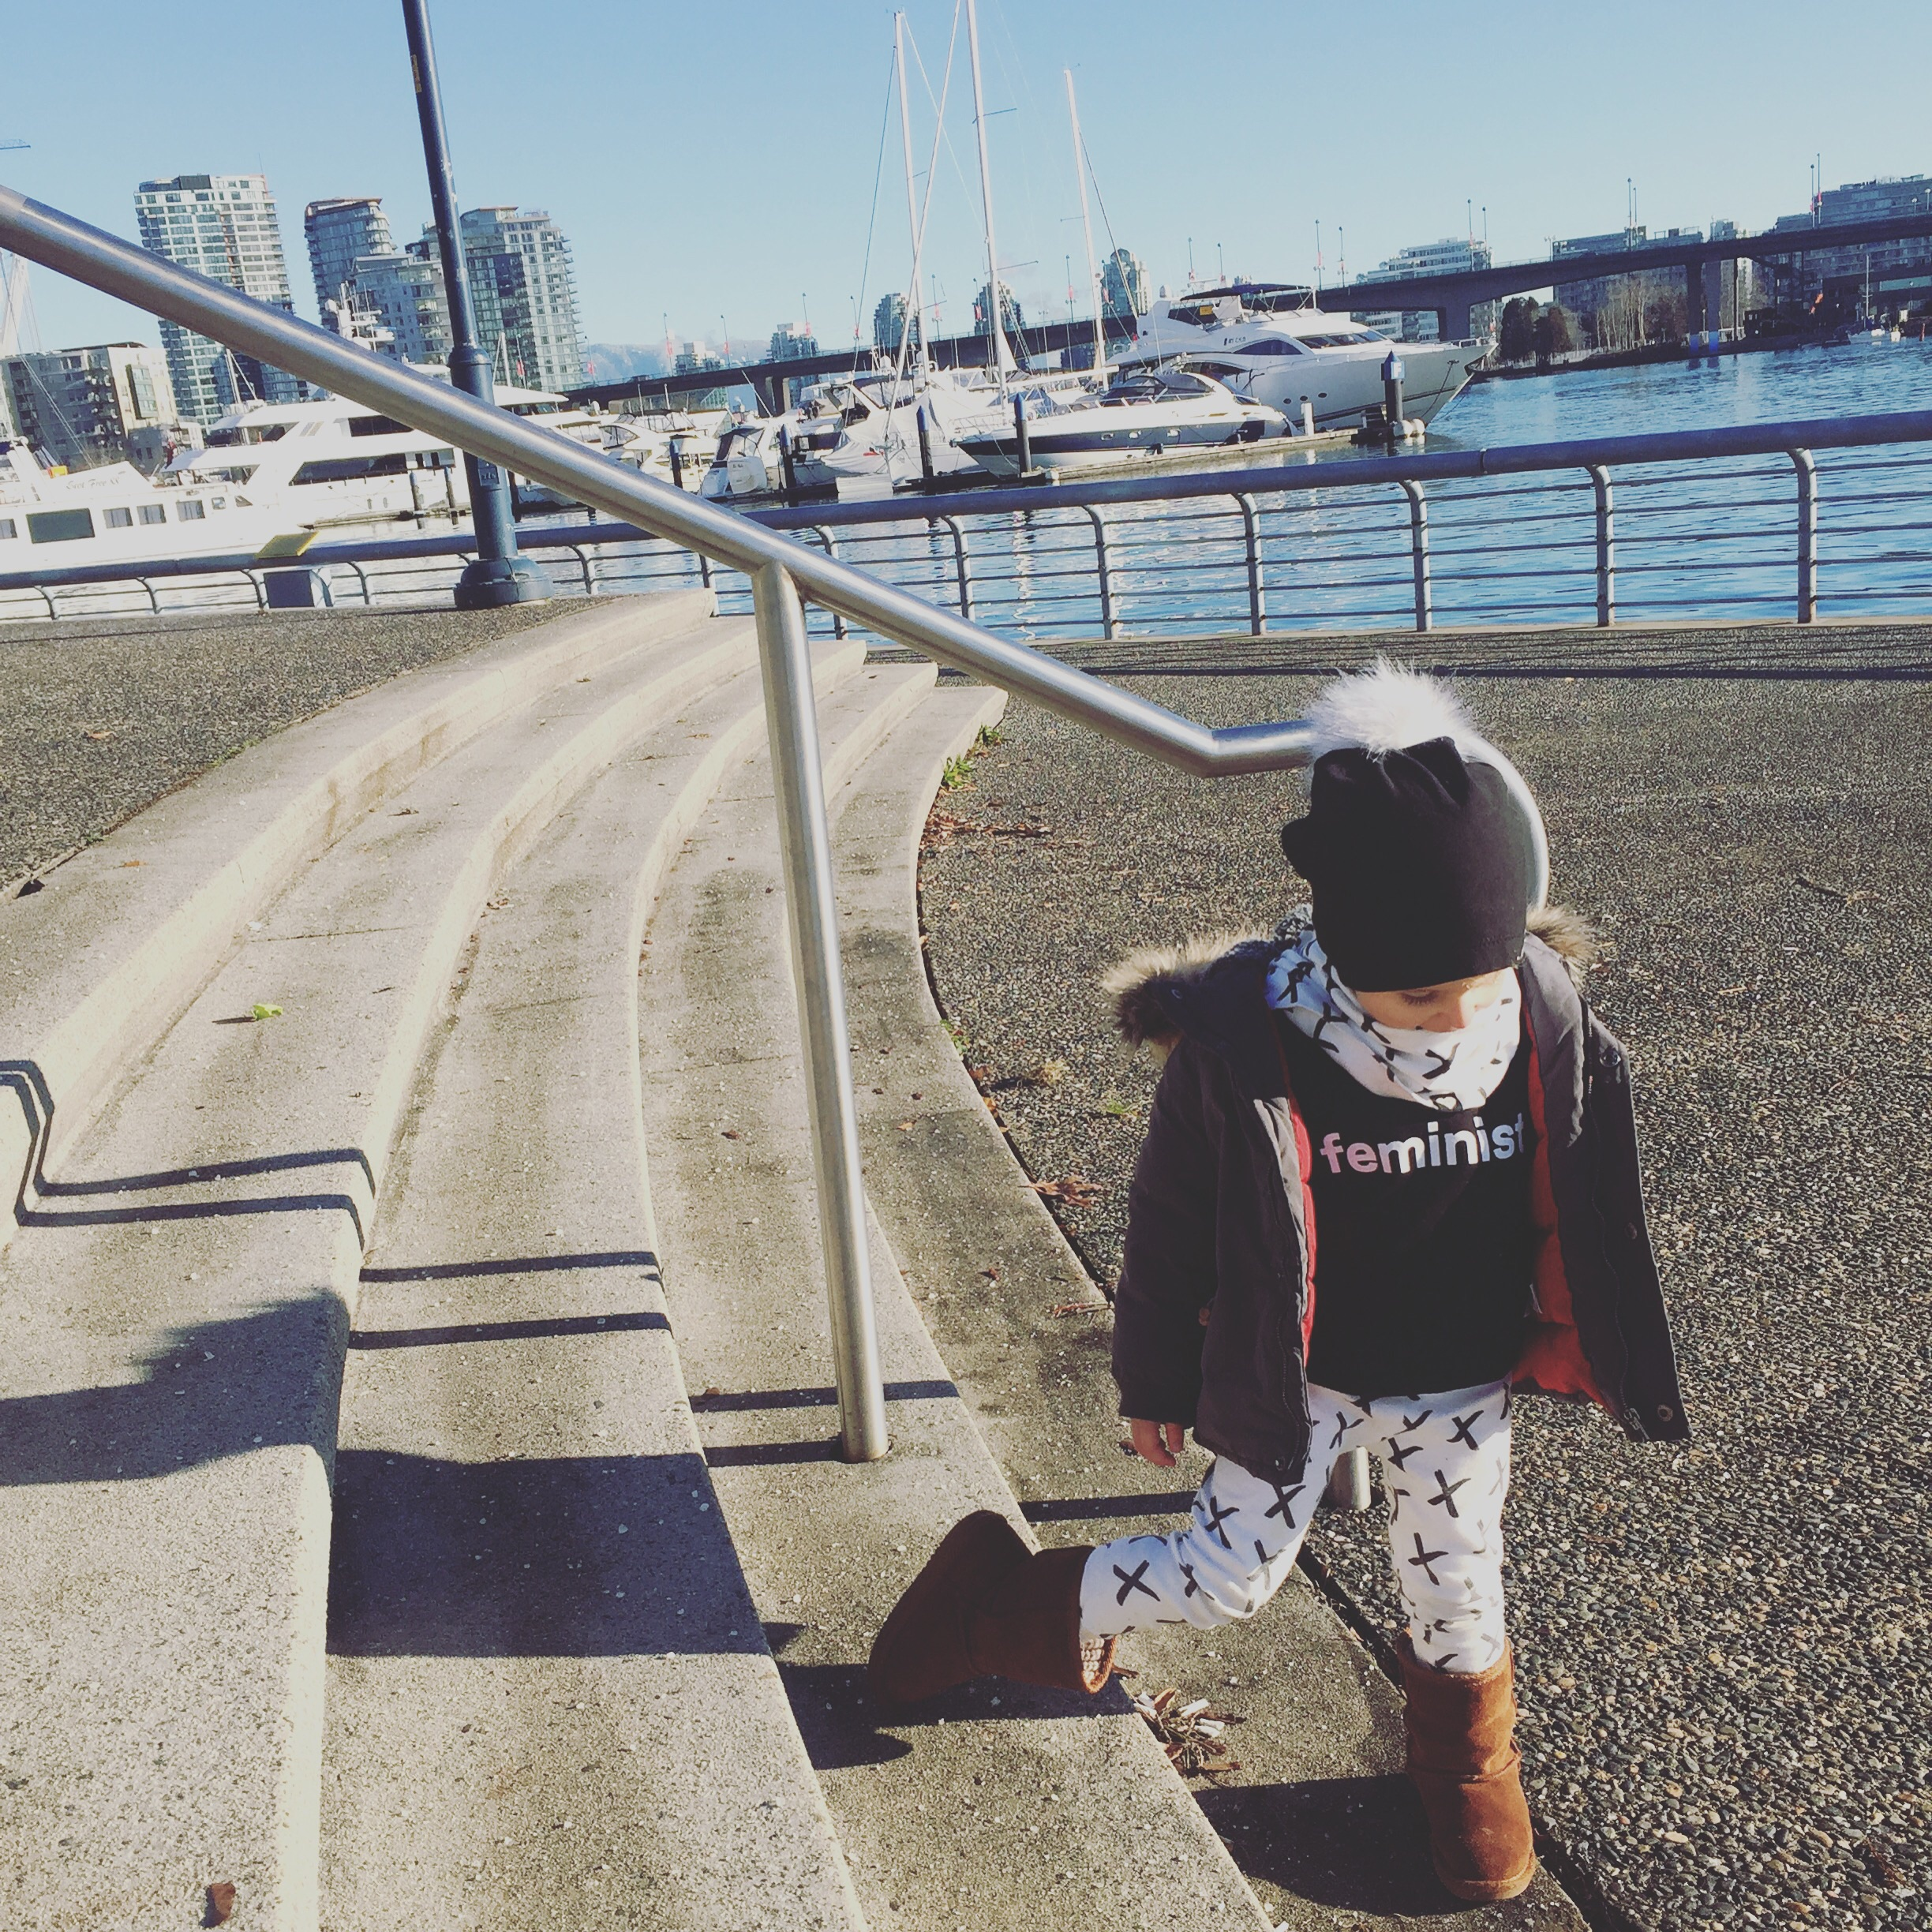 On a gorgeous New Years Eve day, Hudson and I take to the Vancouver seawall together, sharing many laughs.